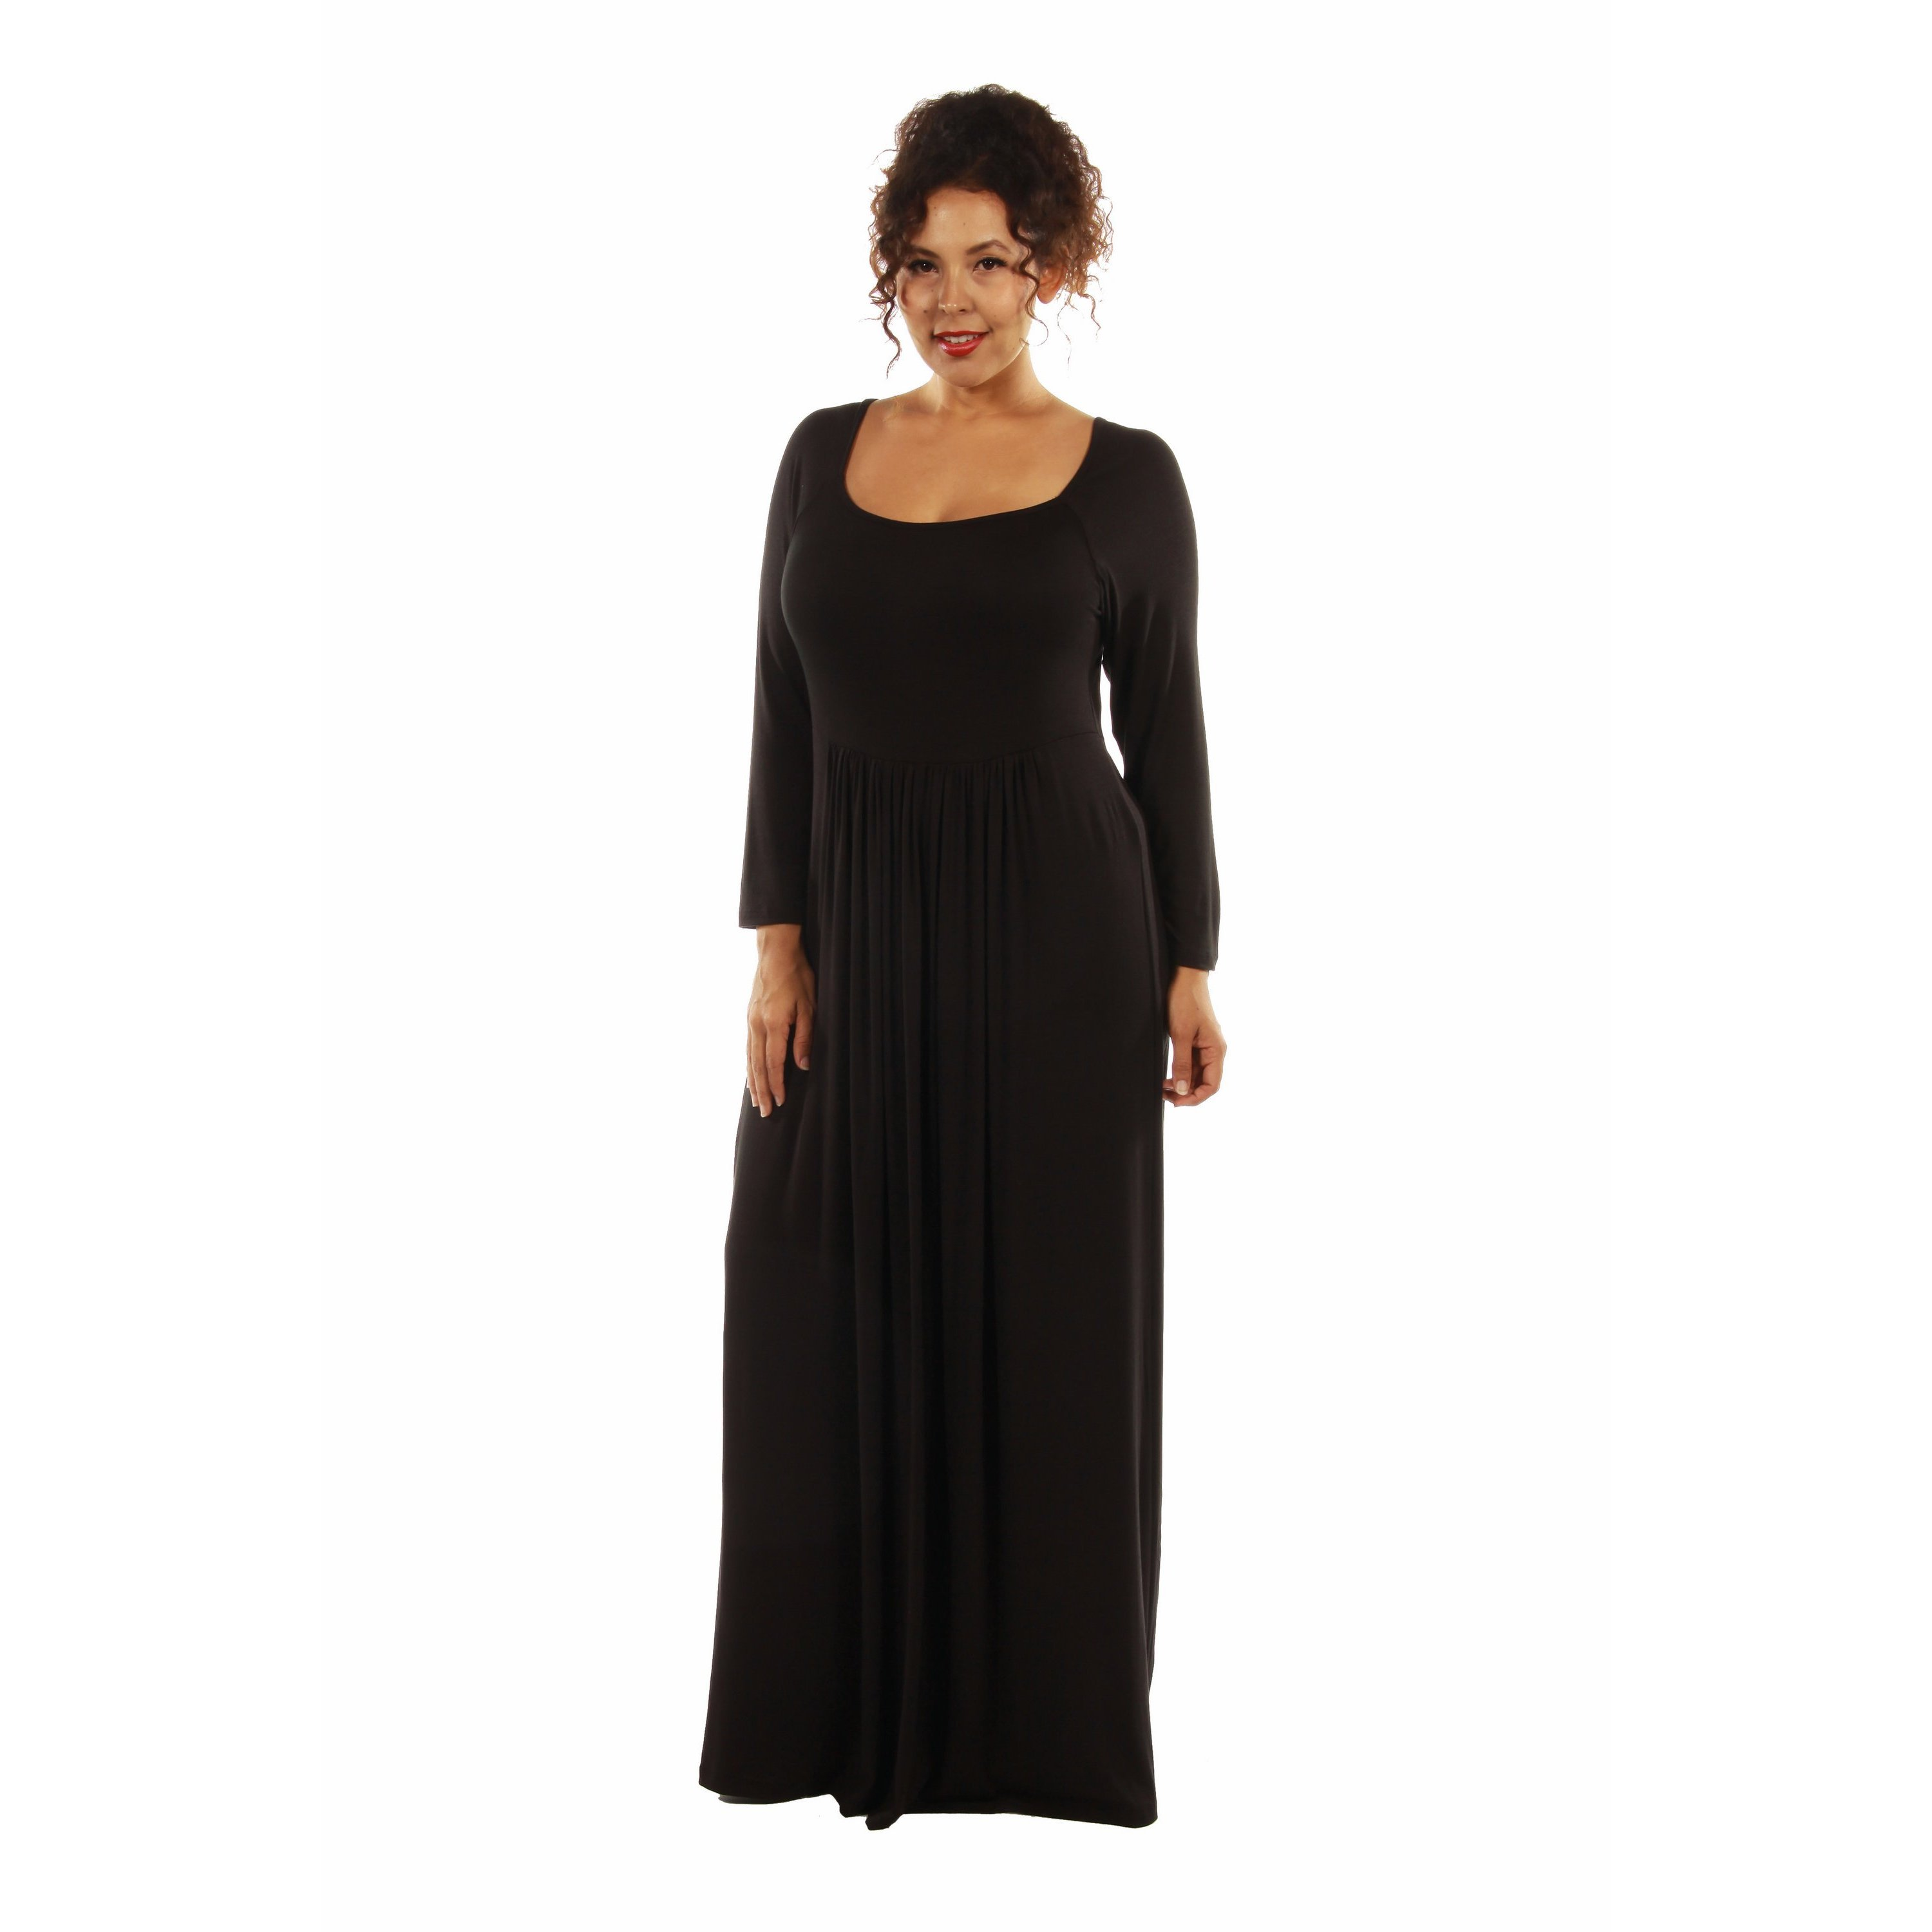 Shop 24/7 Comfort Plus Size Maxi Dress - On Sale - Free Shipping On ...